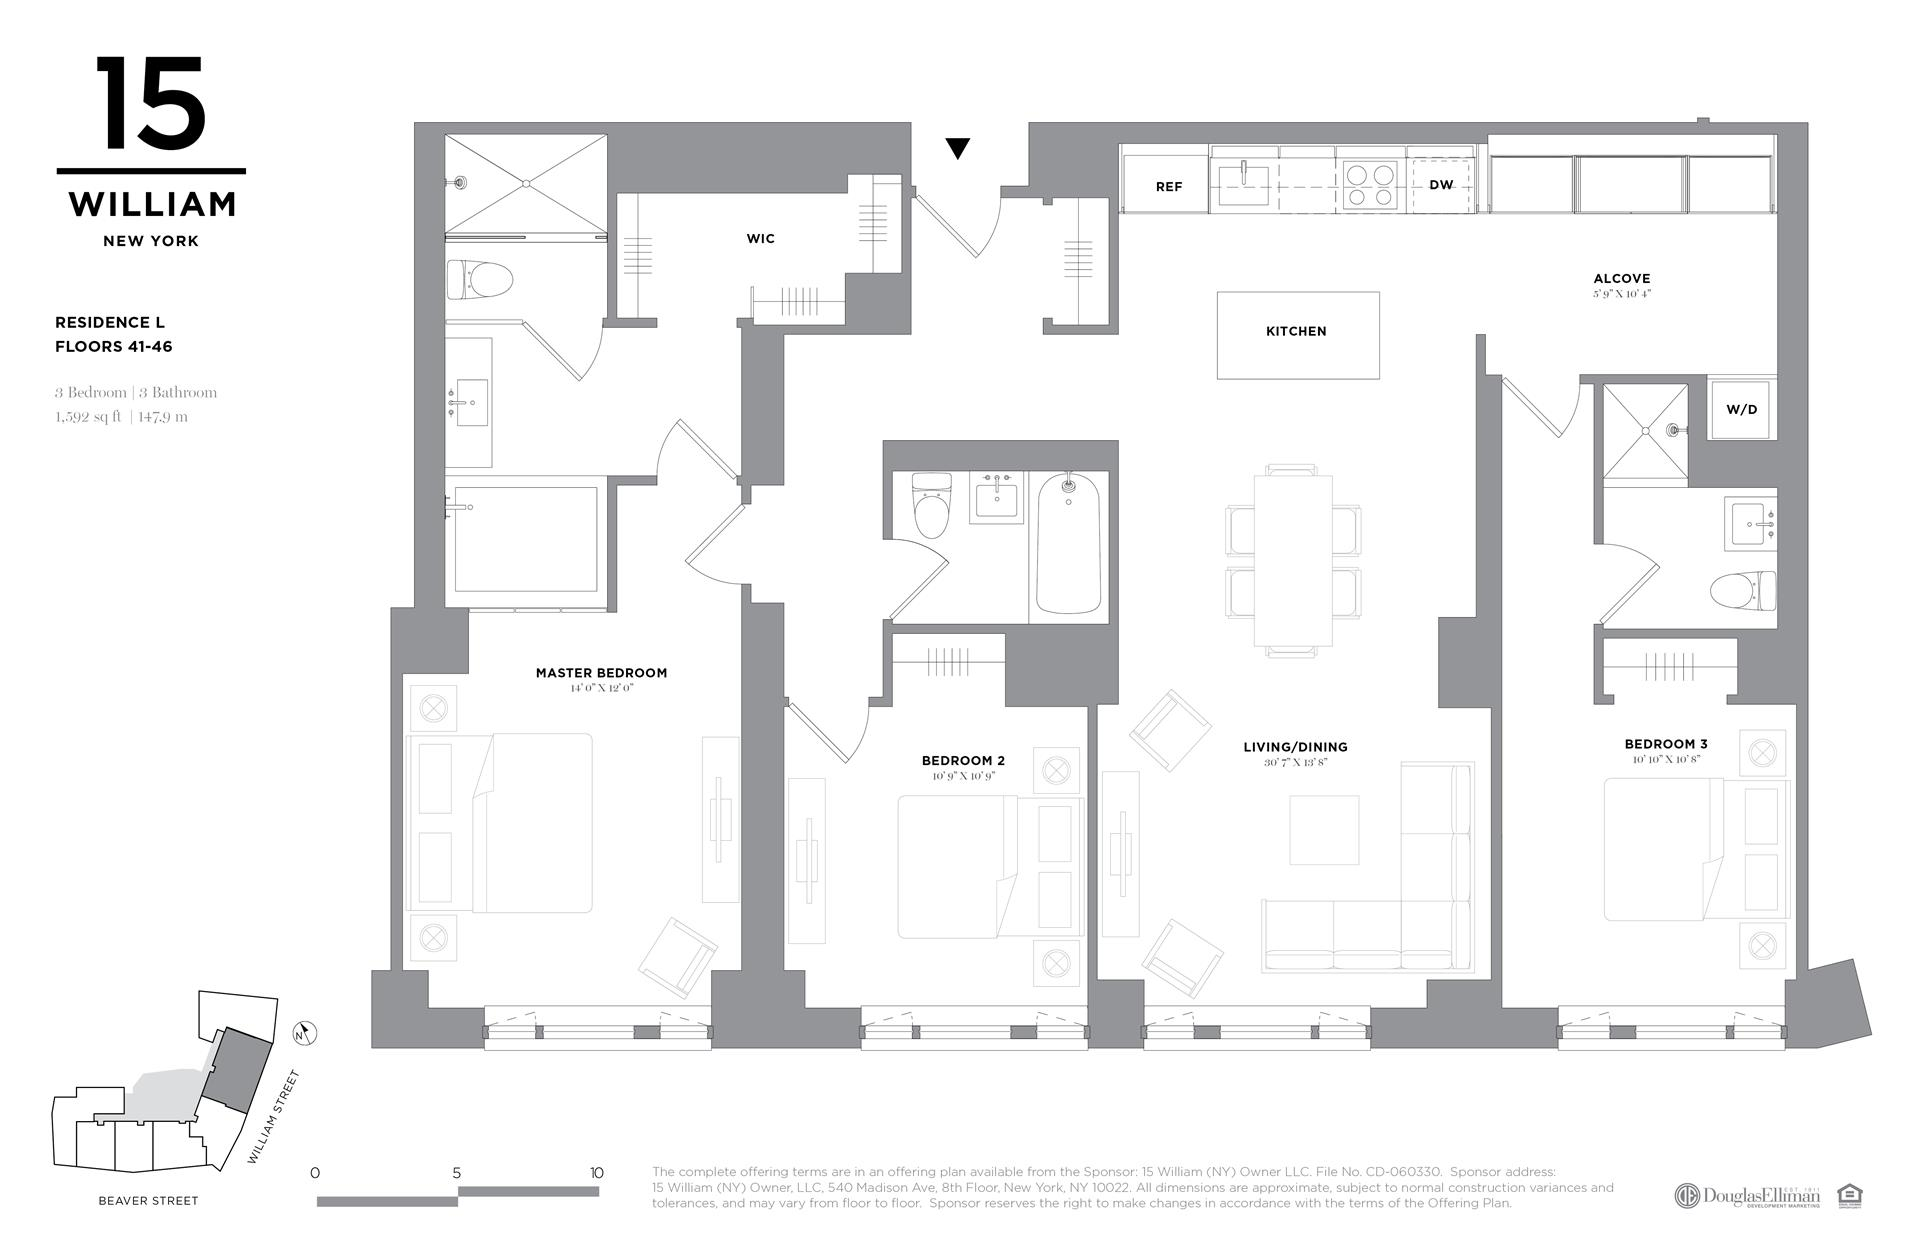 Floor plan of 15 William, 15 William St, 46L - Financial District, New York